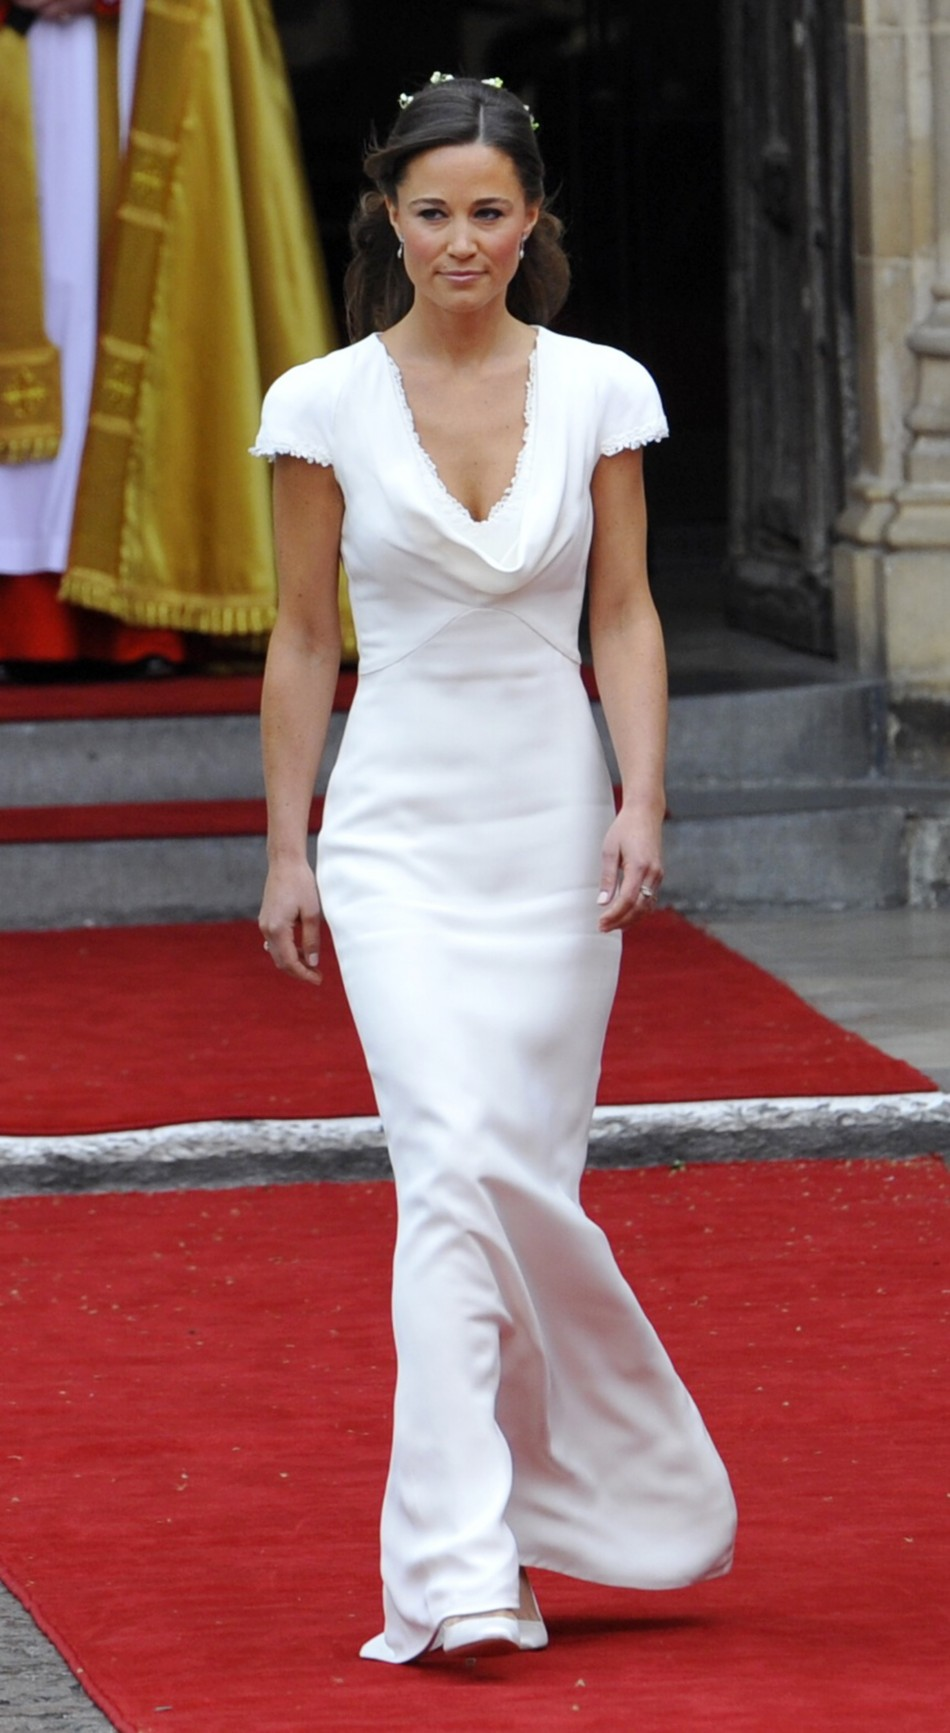 Pippa Midleton, undeniably the bridesmaid of the century! Dressed in Alexander McQueen, she almost stole the show at her sister's wedding in 2011.